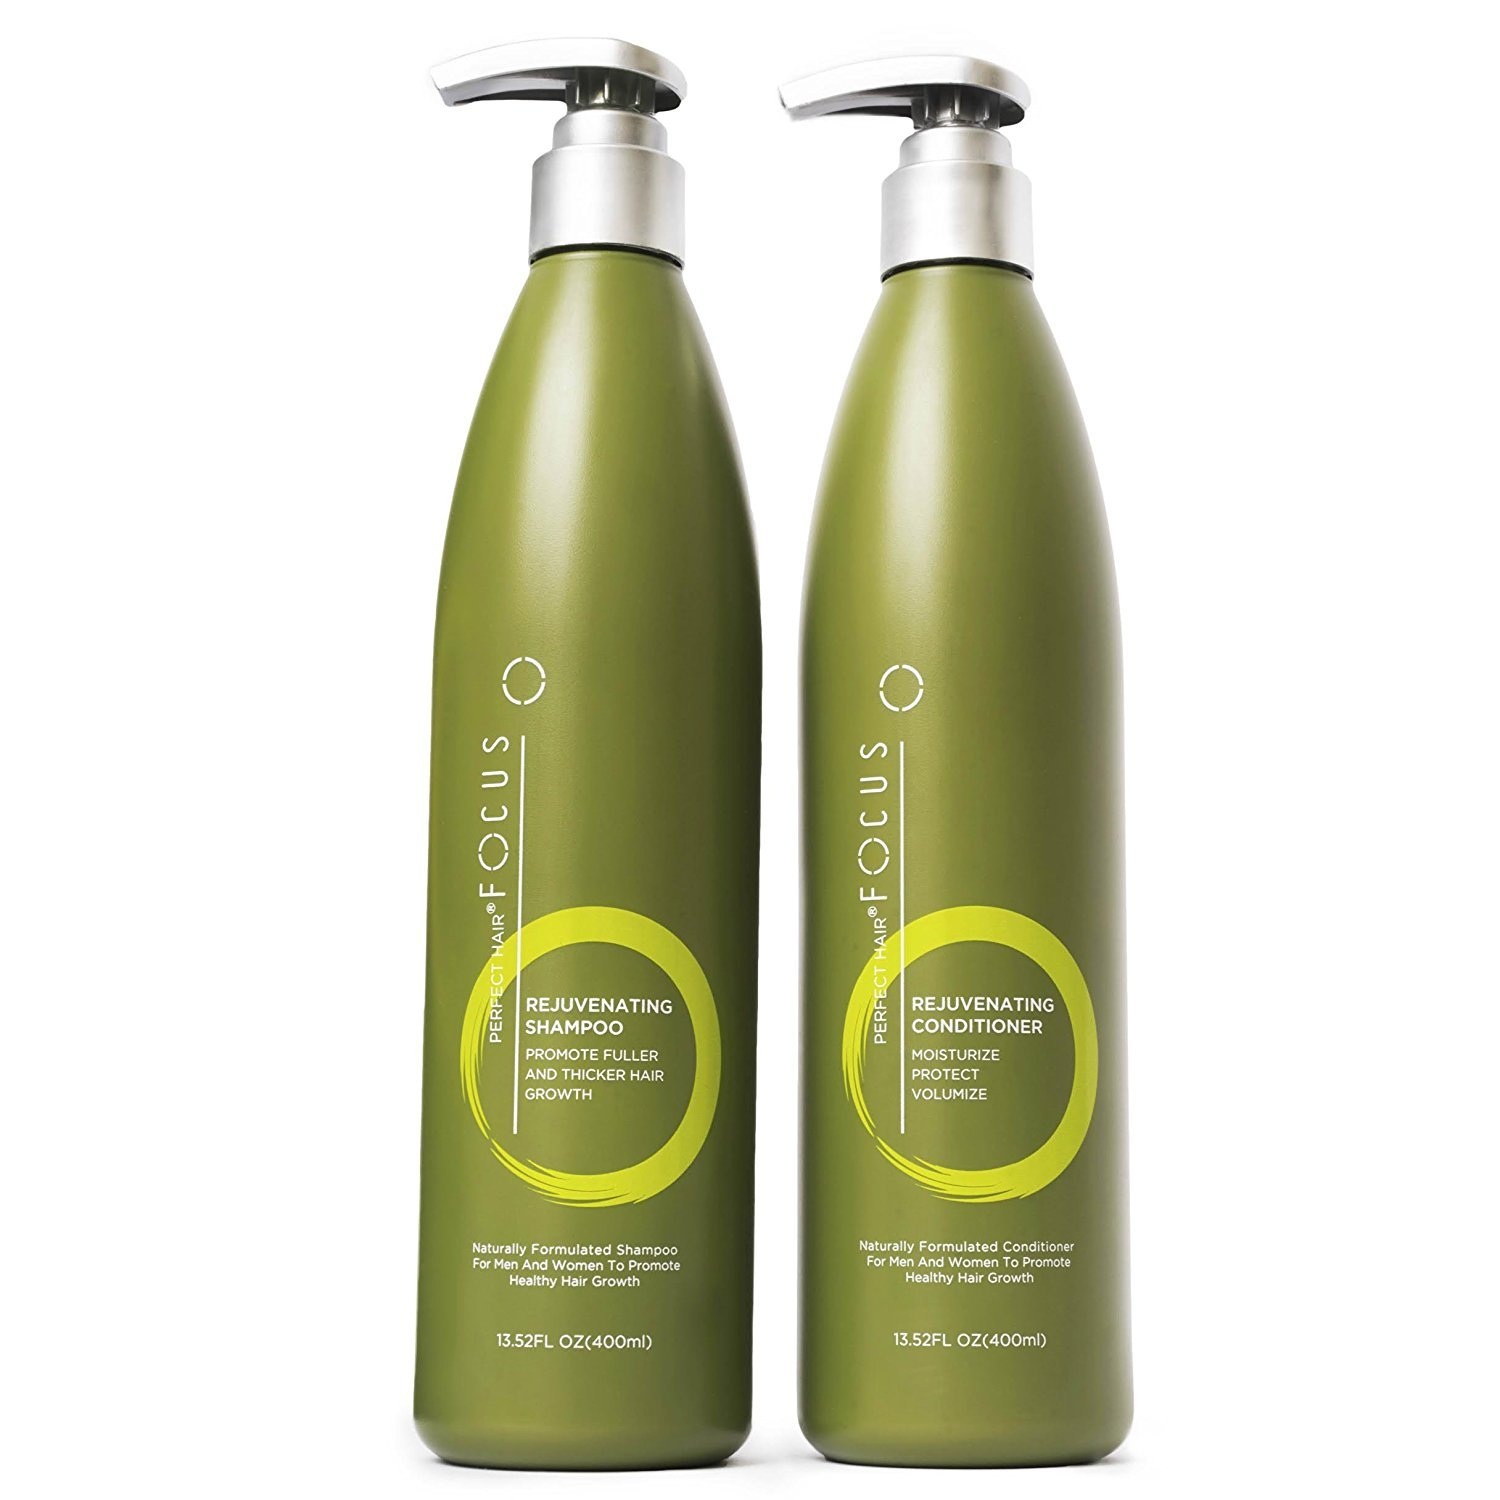 Natural Shampoo and Conditioner - Infused with Biotin, Jojoba, Coconut and Argan Oil to Promote Hair Growth - Sulfate and Paraben Free - Includes Pump - 13.5oz (1 Pack)